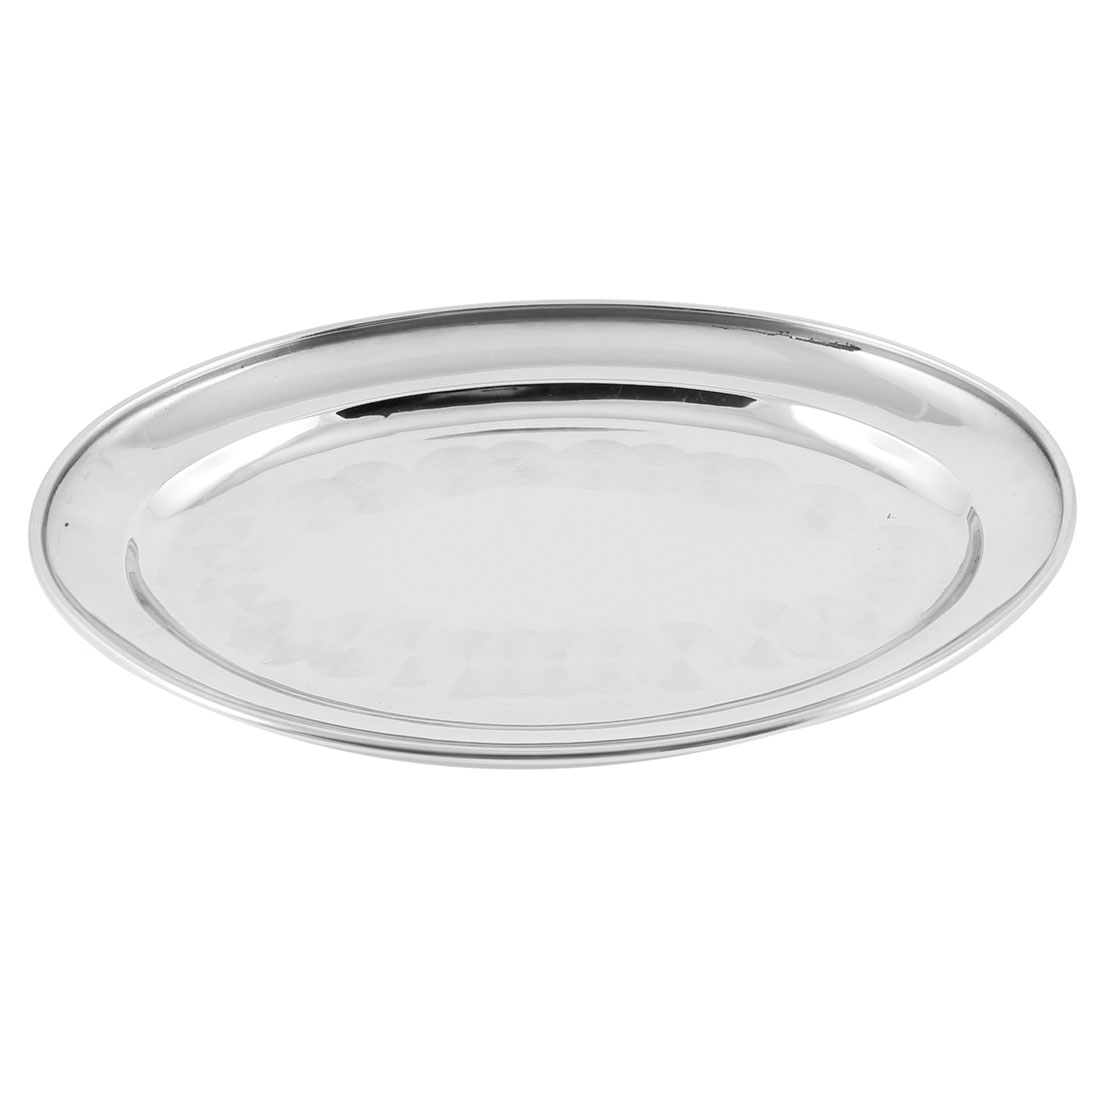 Home Kitchen Silver Tone Stainless Steel Dinner Plate Dish Tray 21.5cm x 14.5cm